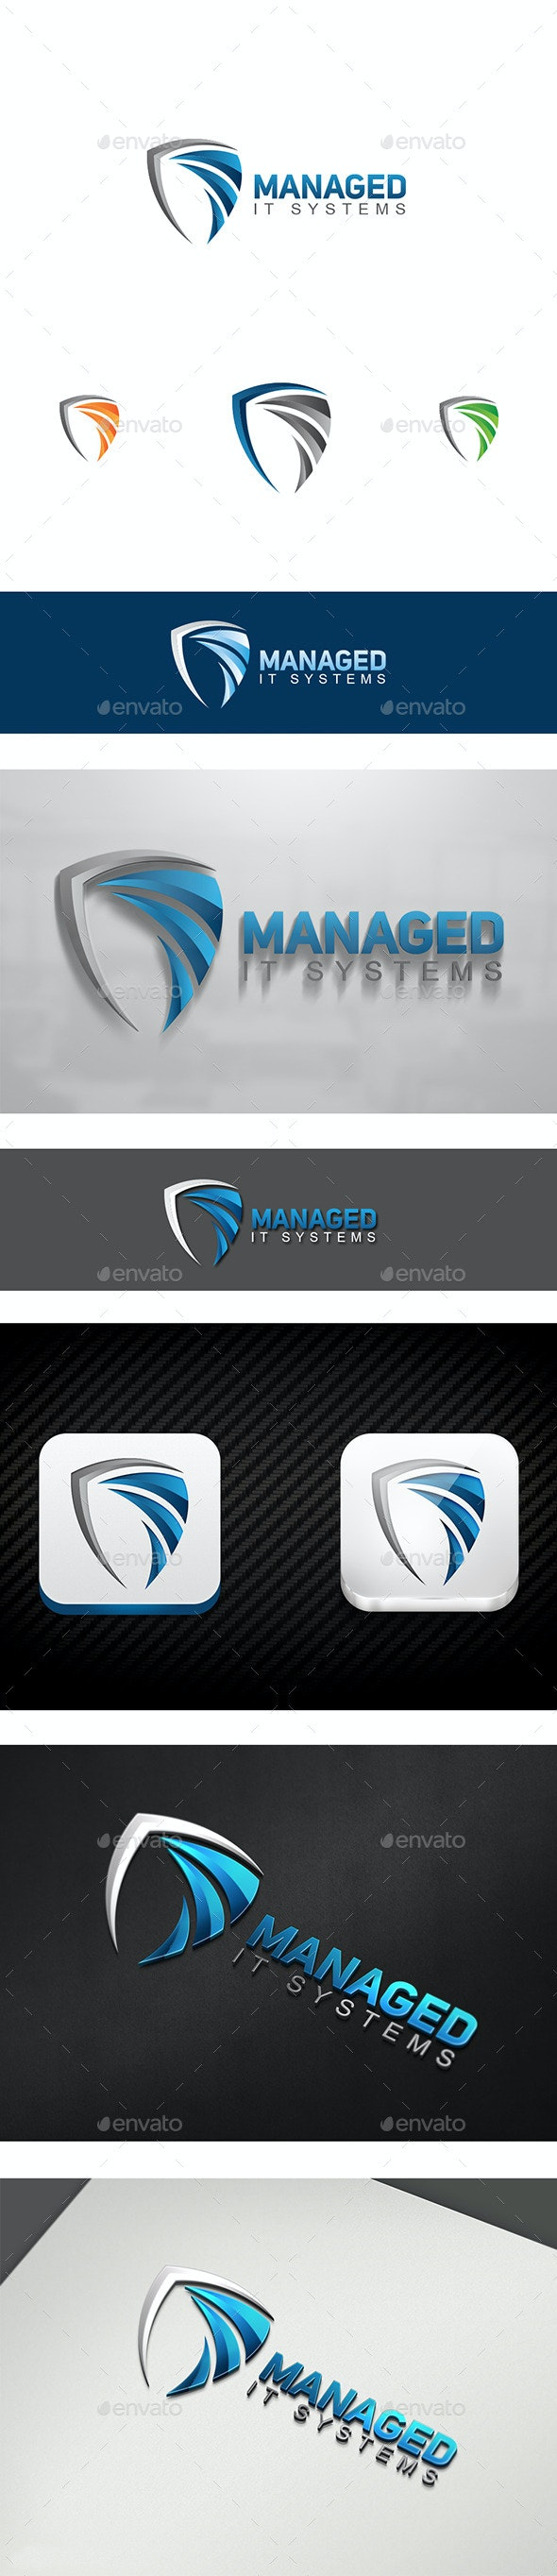 Managed IT - Objects Logo Templates